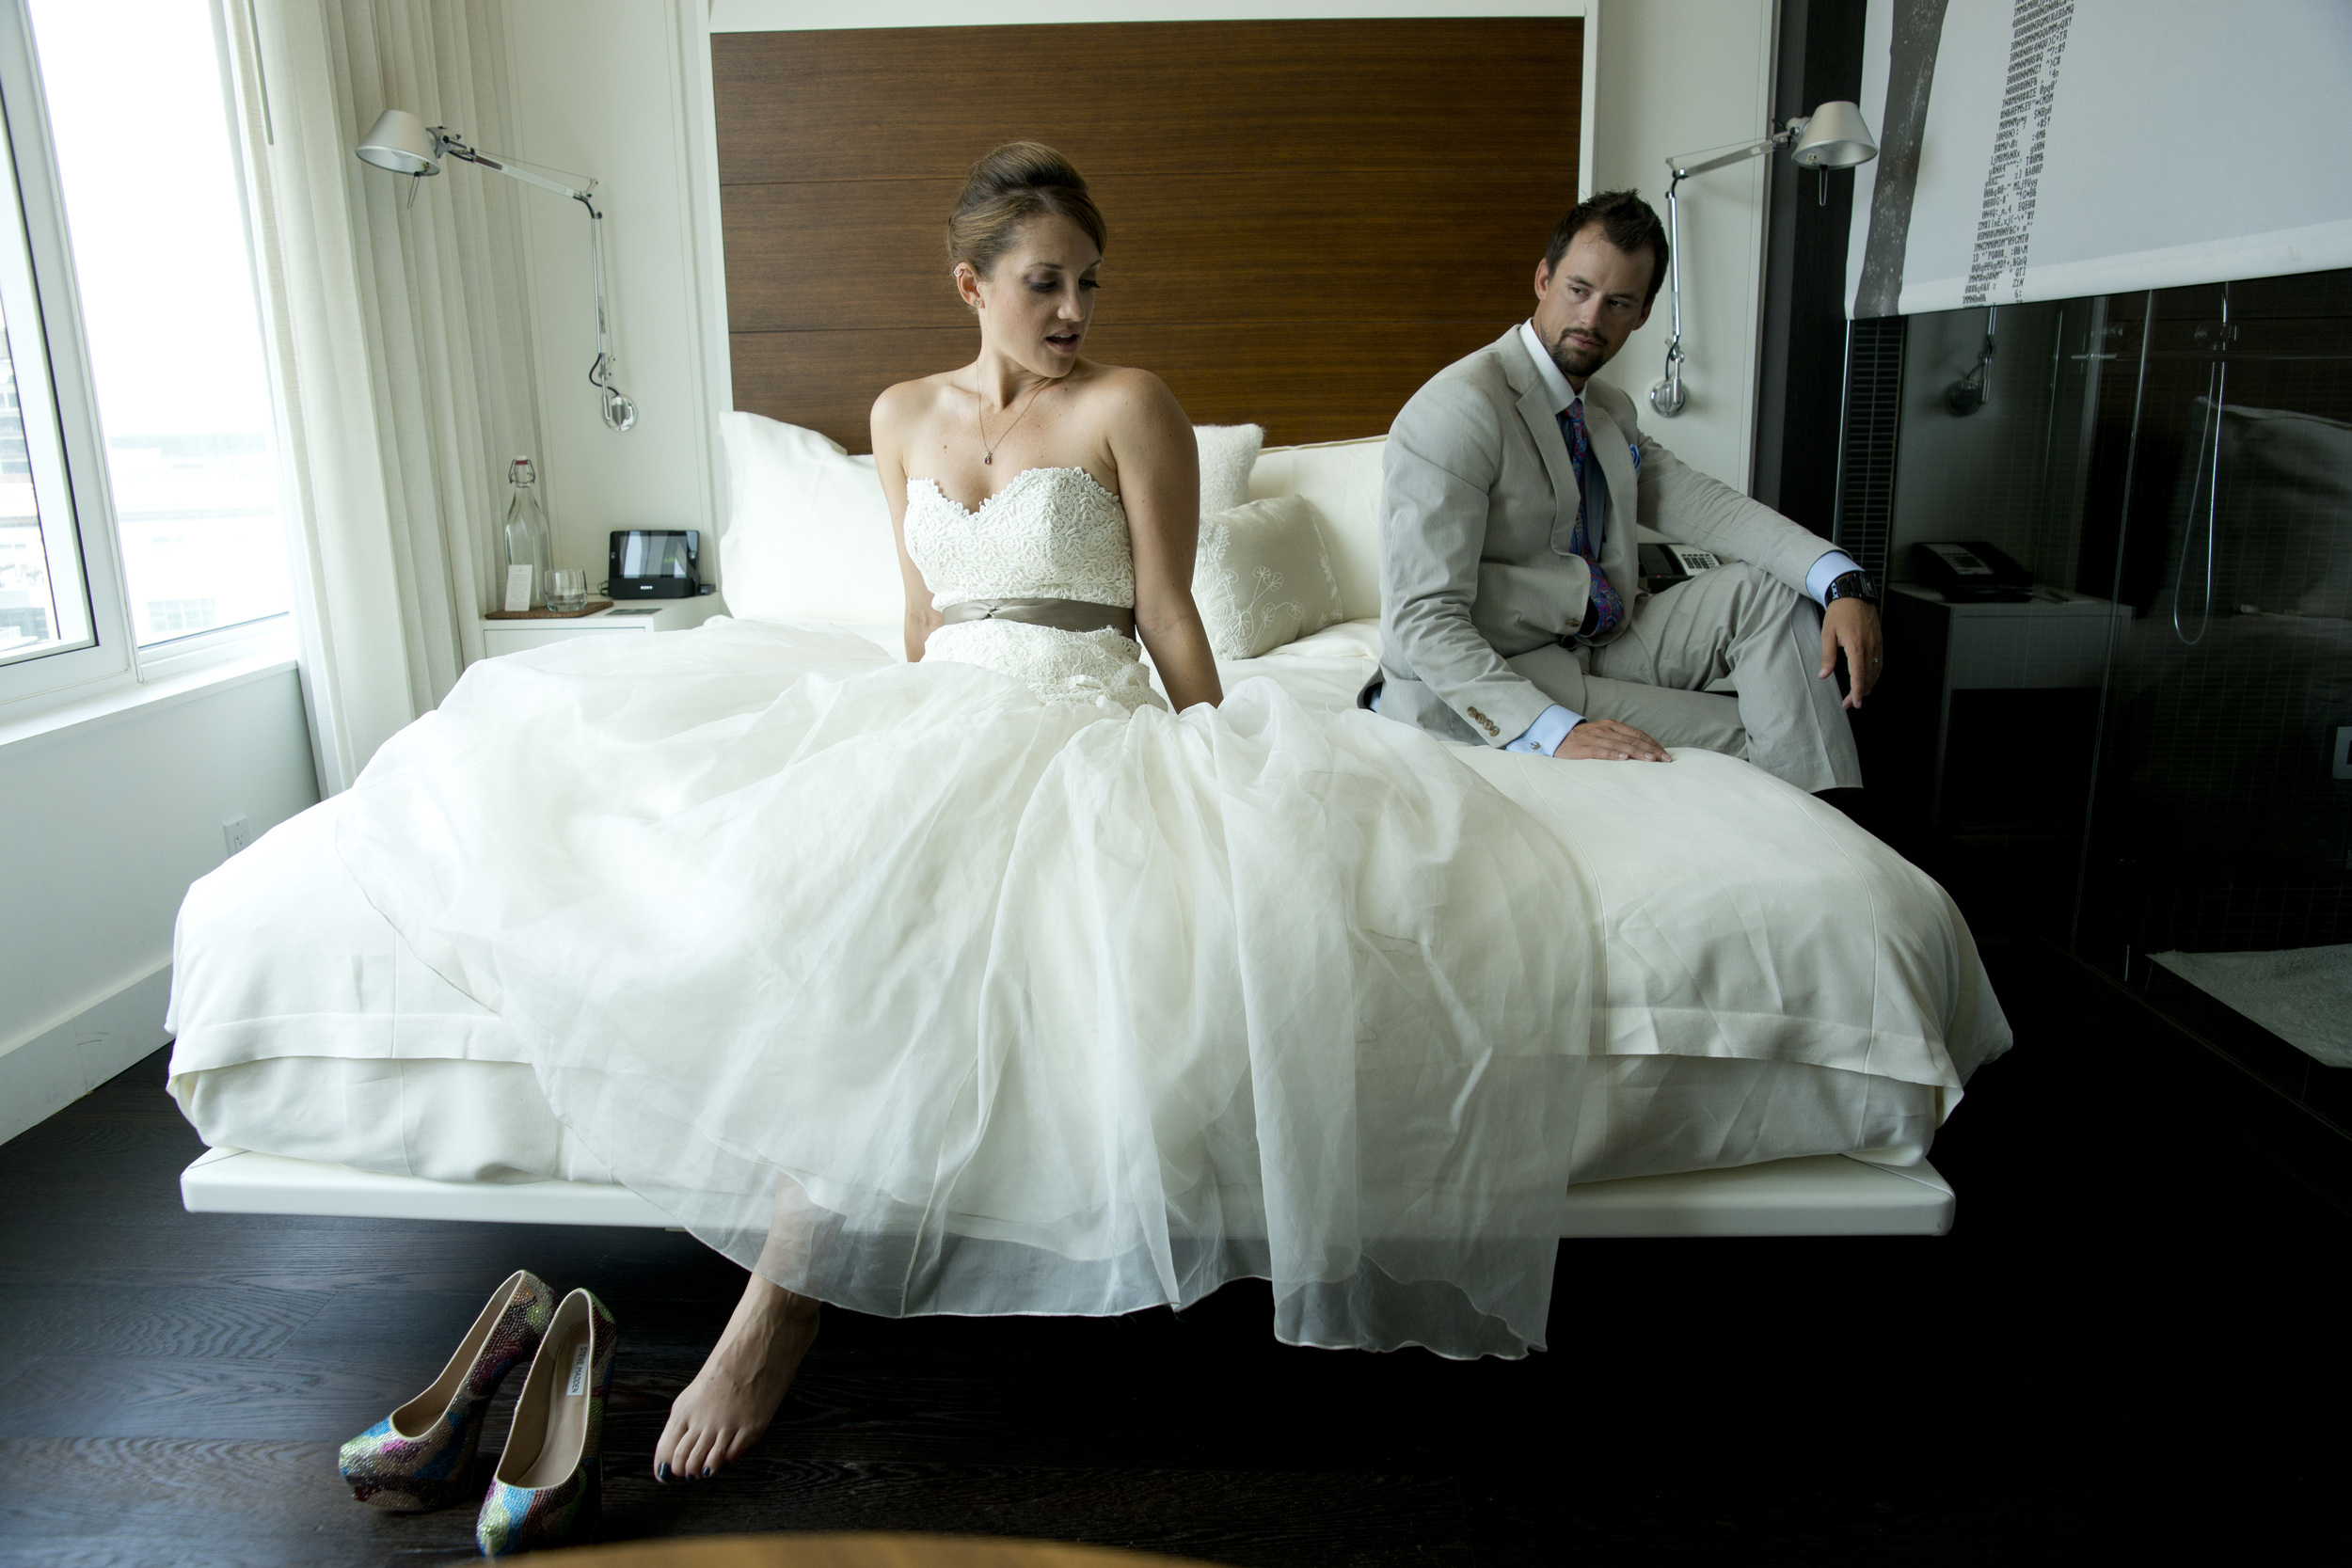 Bride and Groom in NYC Hotel